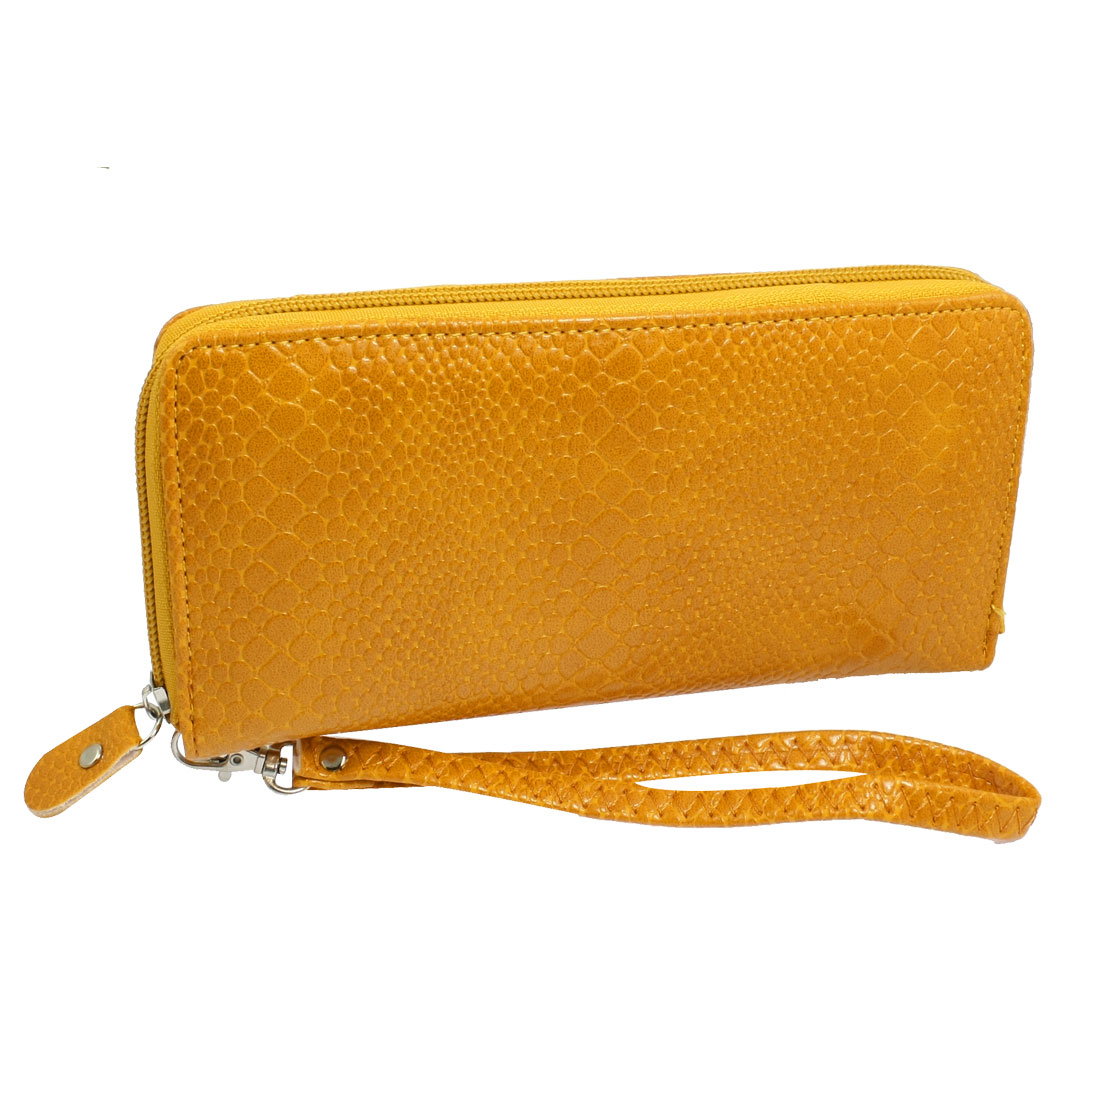 Ladies Snake Pattern Faux Leather Zipper Closure Purse Handbag Yellow